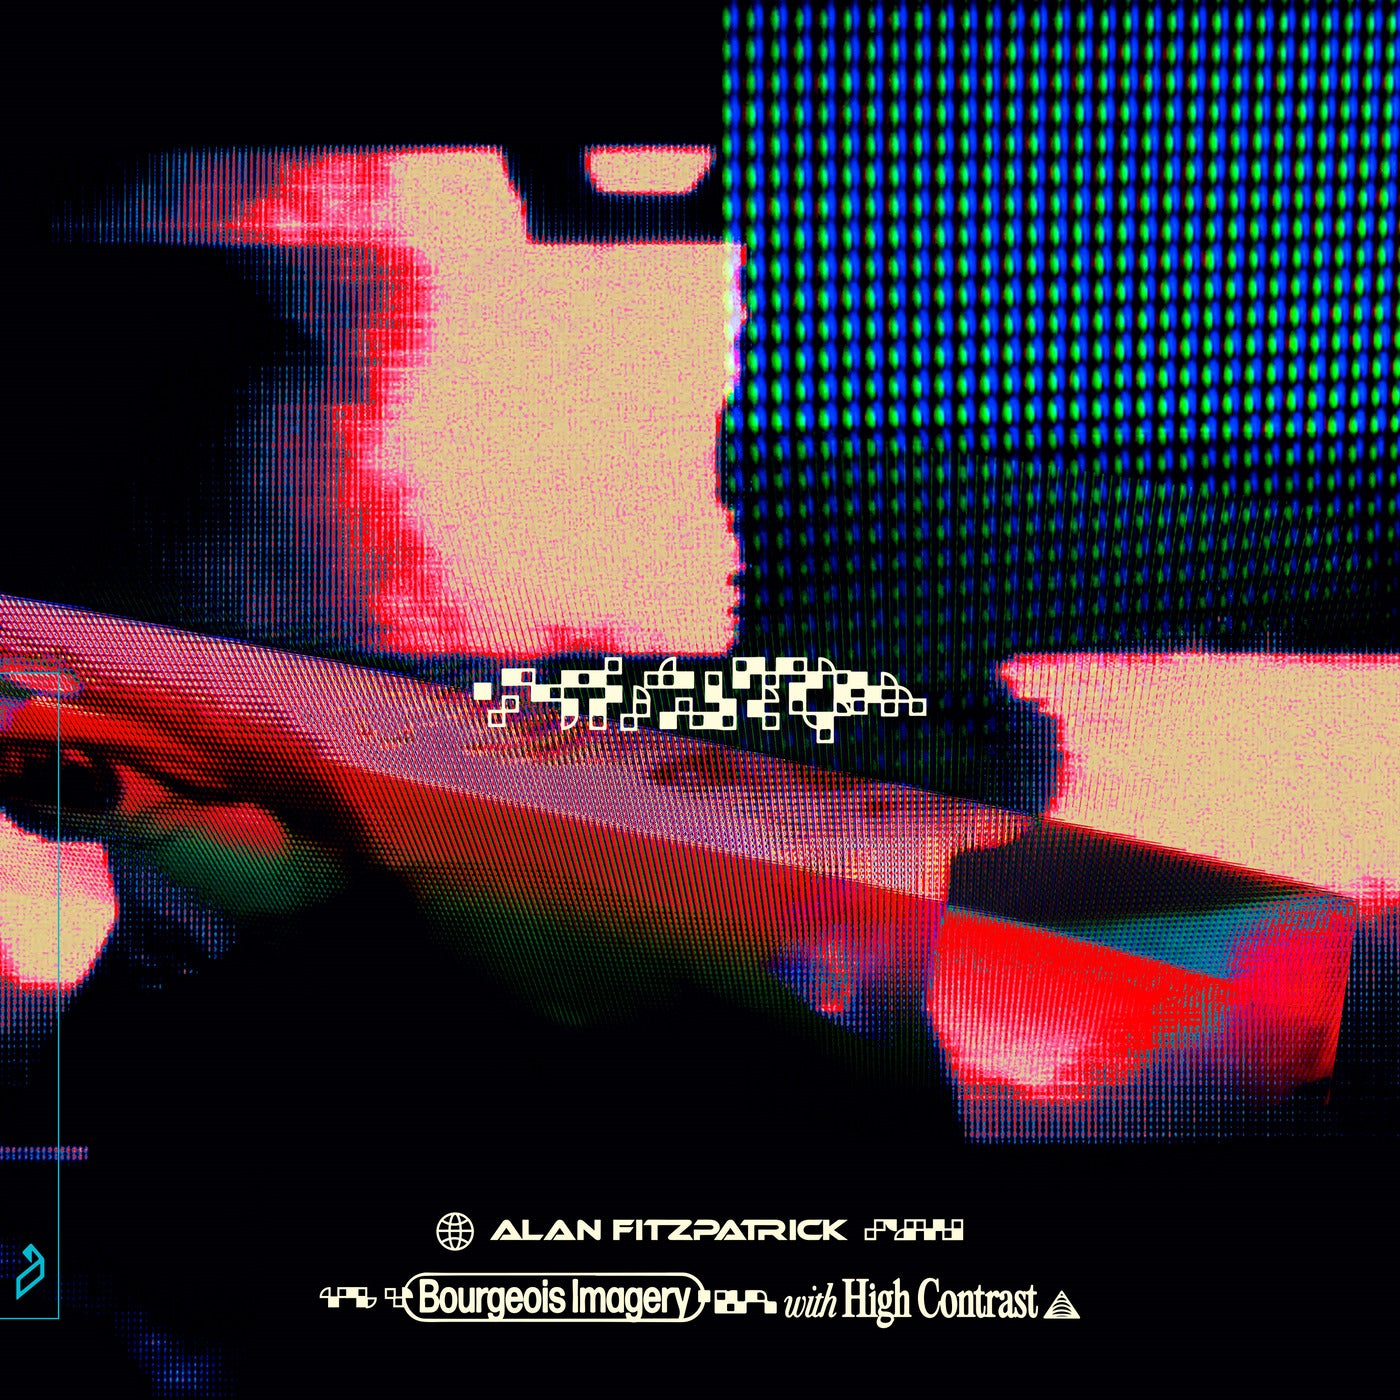 Download Bourgeois Imagery on Electrobuzz